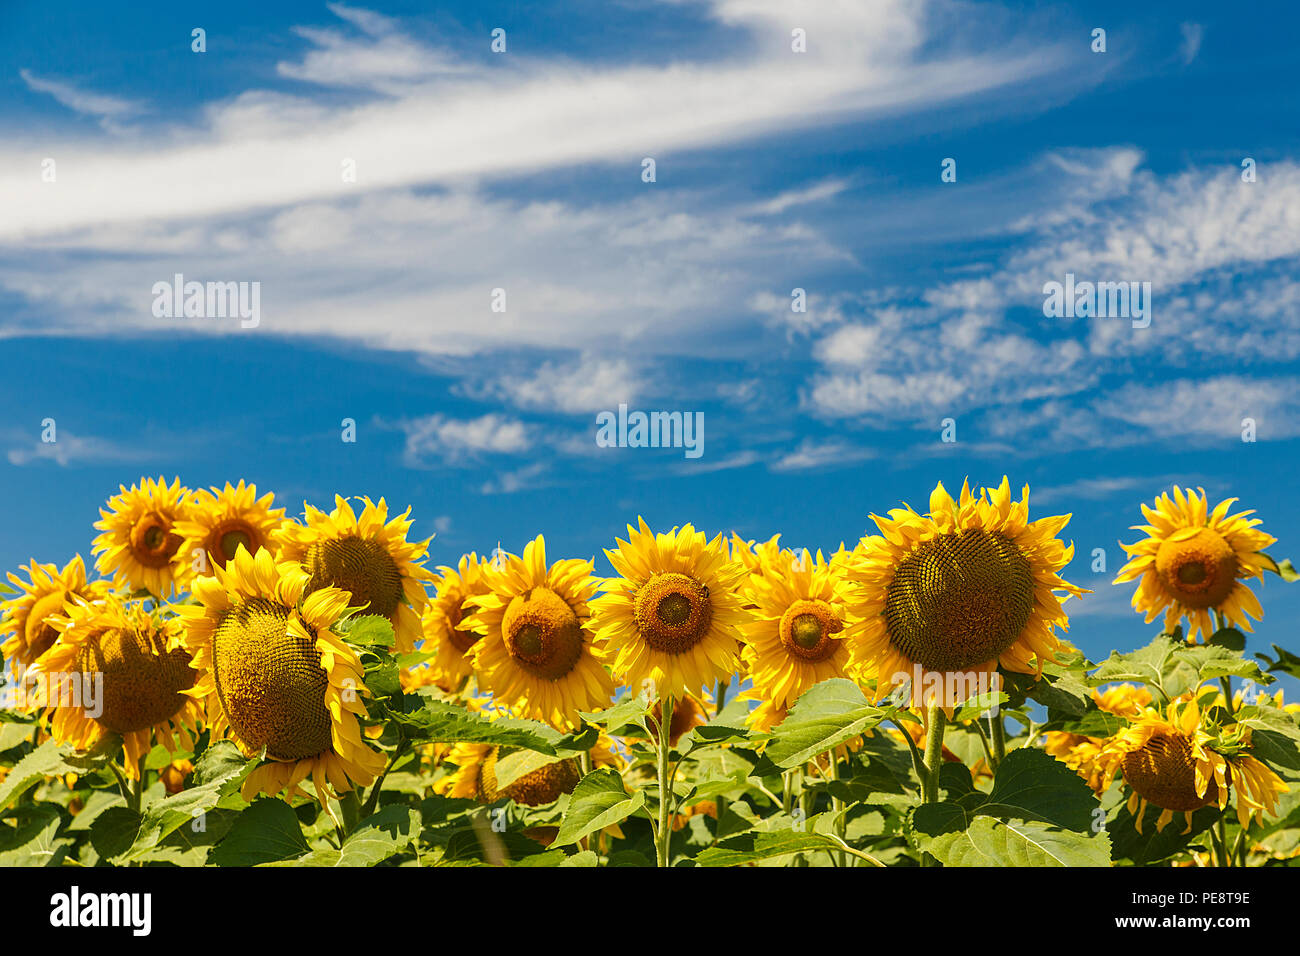 Sunflowers in the sun in a field of Burgos lands, Spain Stock Photo